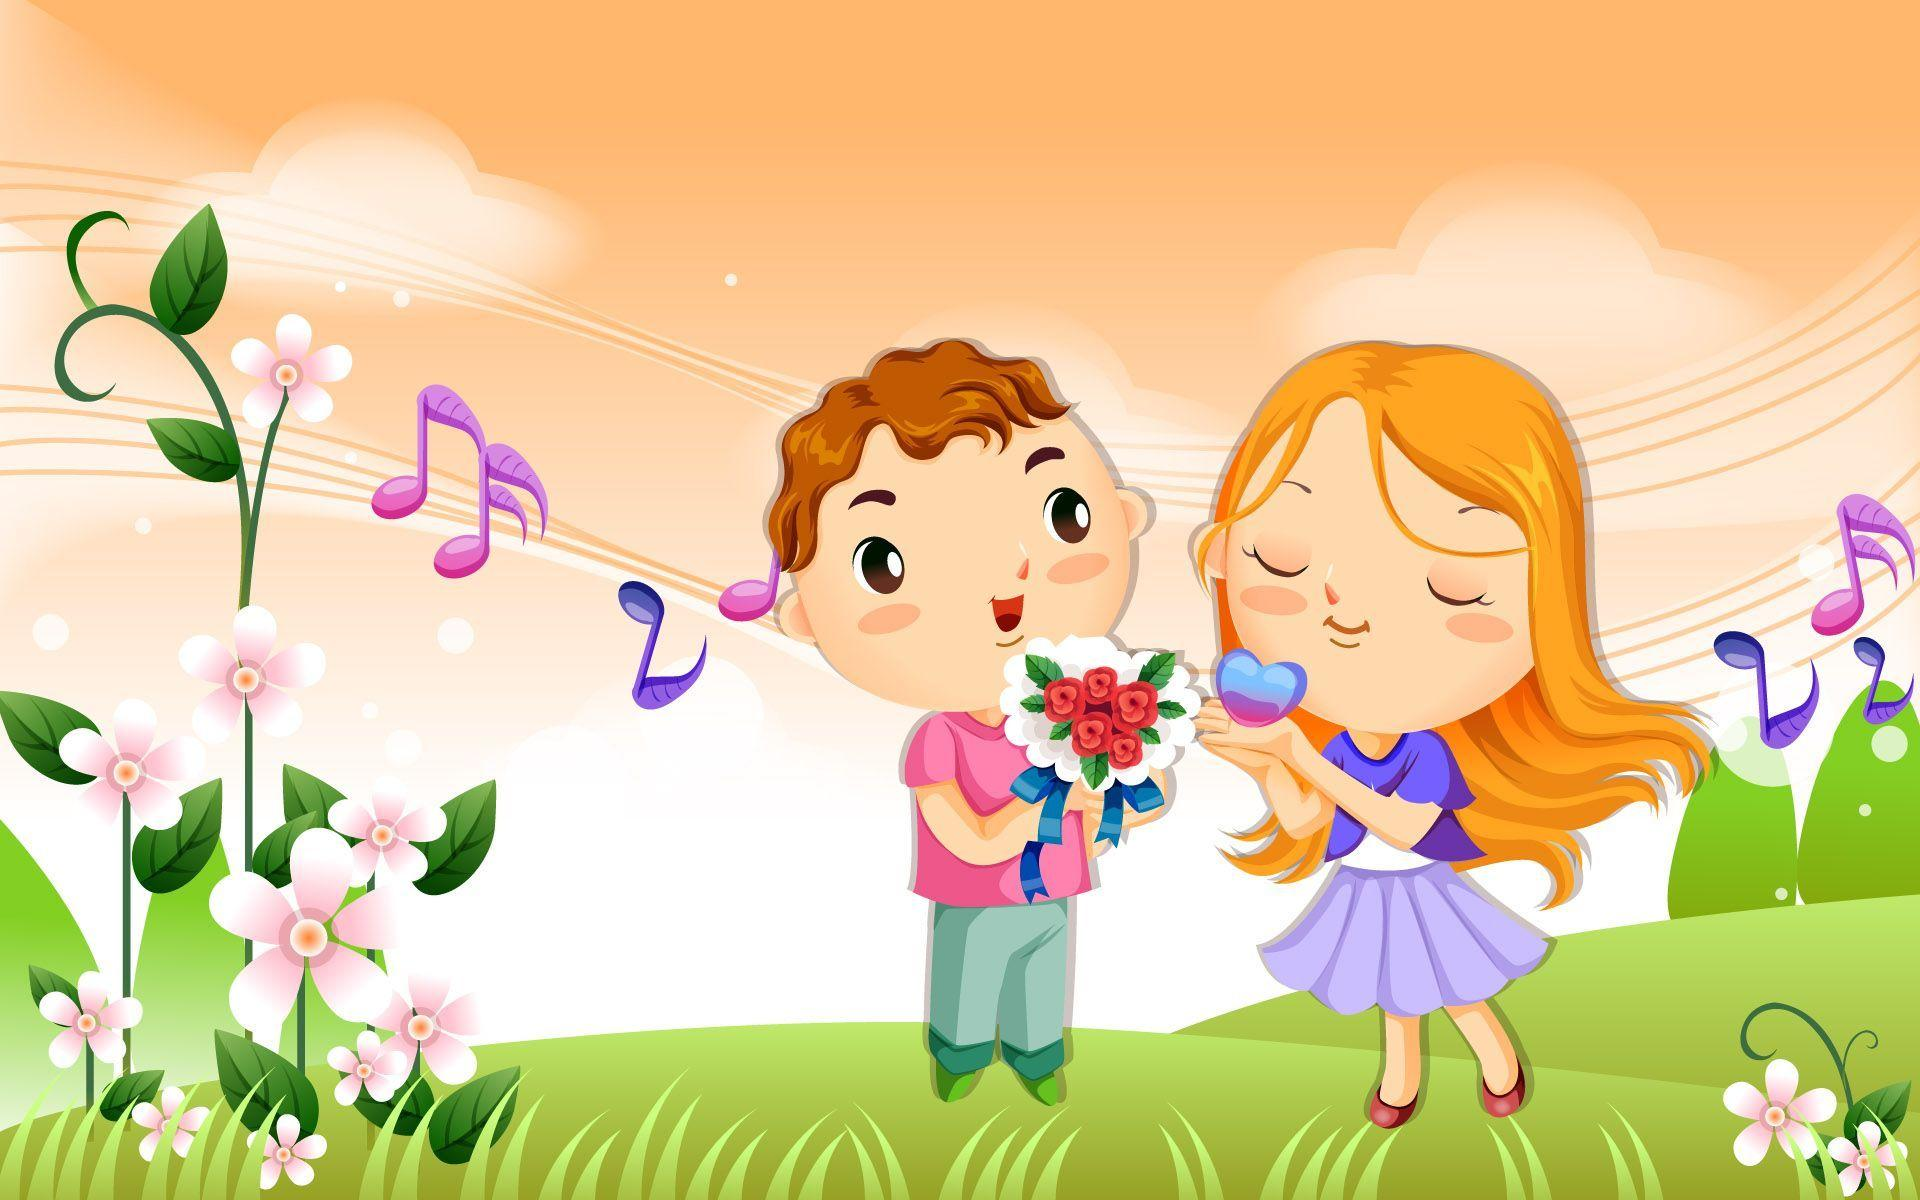 Lovely Cartoon Couple Android Wallpapers 960x800 Hd: Love Cartoon Wallpapers